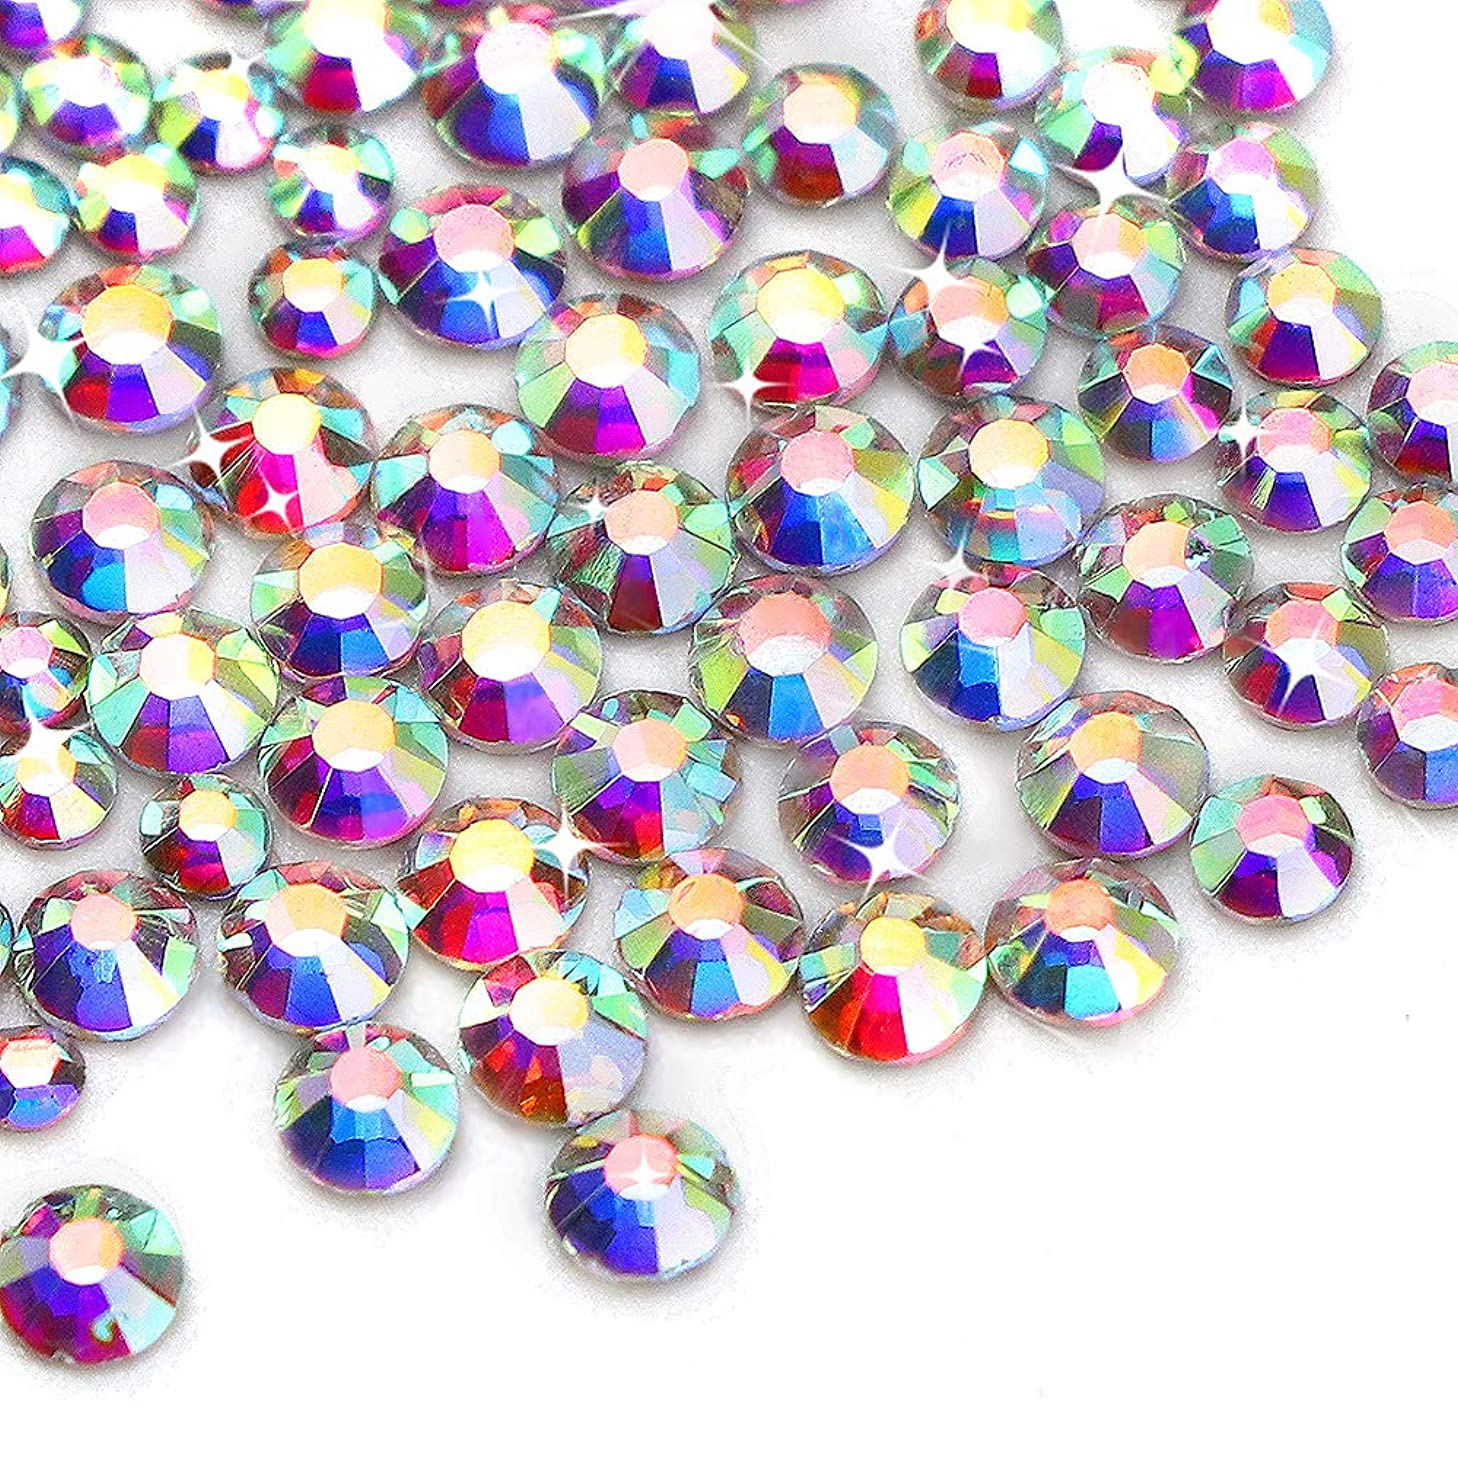 3456 pcs Nail Crystals ab Nail Art Rhinestones Round Beads Flatback AB Rhinestones Sizes SS 3 4 5 6 8 10 for Nails Decoration Crafts Eye Makeup Clothes Greeting Cards by Xpeciall(rainbow color)